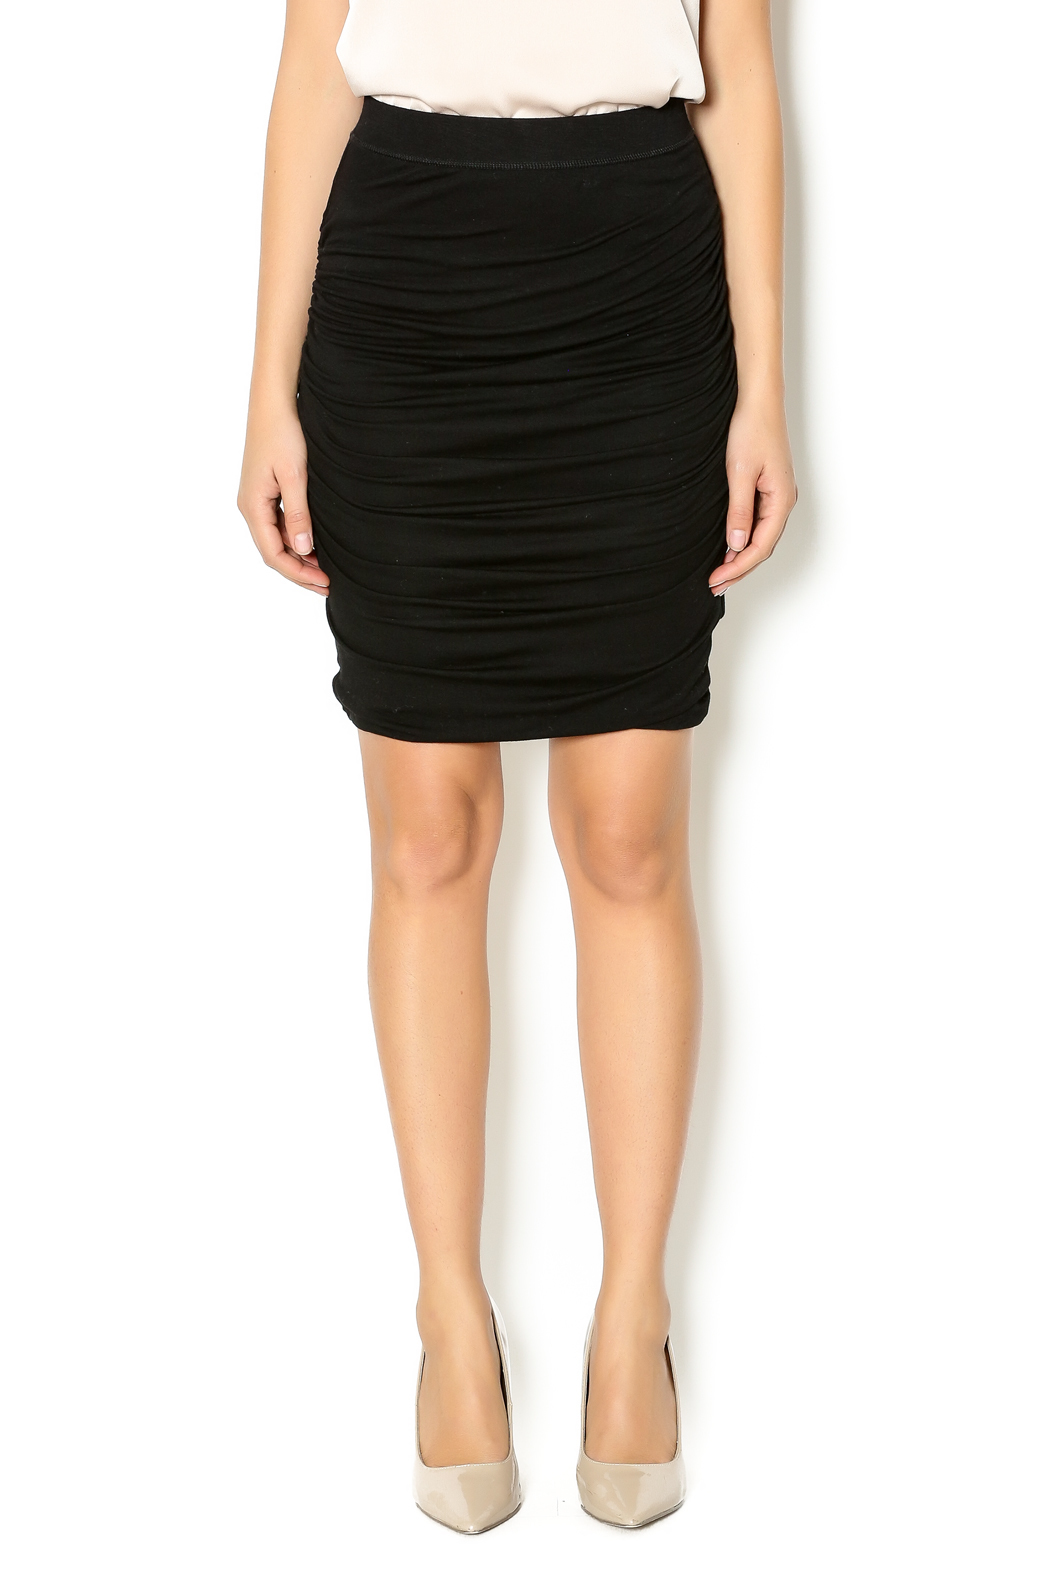 Bishop + Young Black Ruched Skirt - Main Image